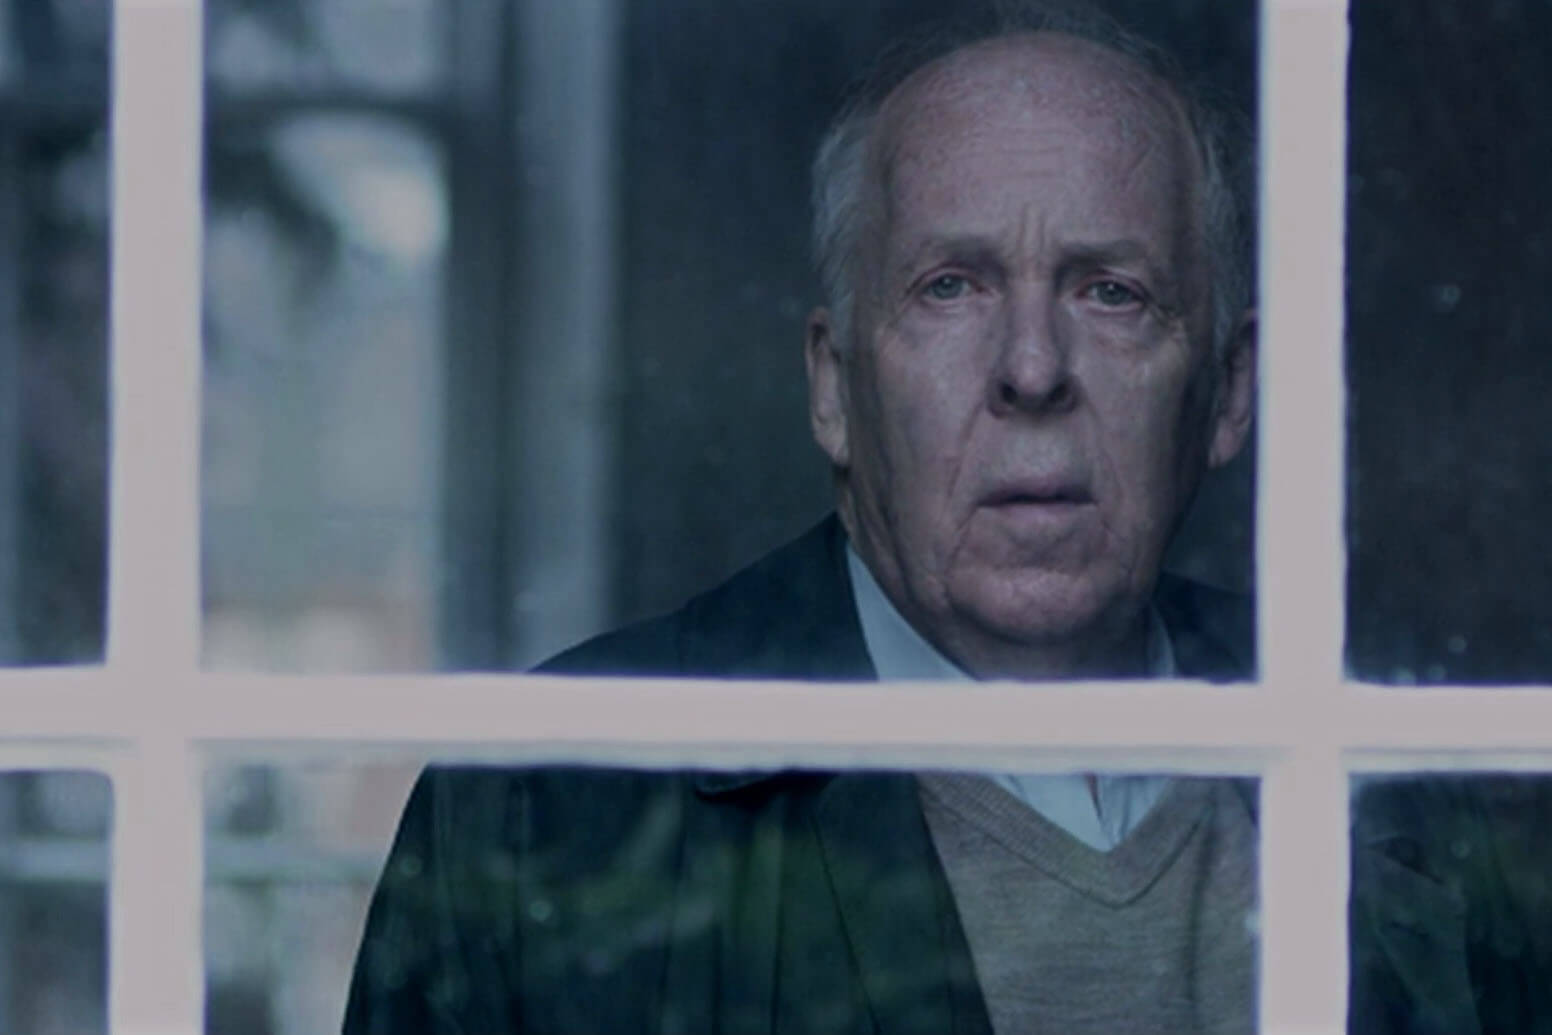 Still from The Carer